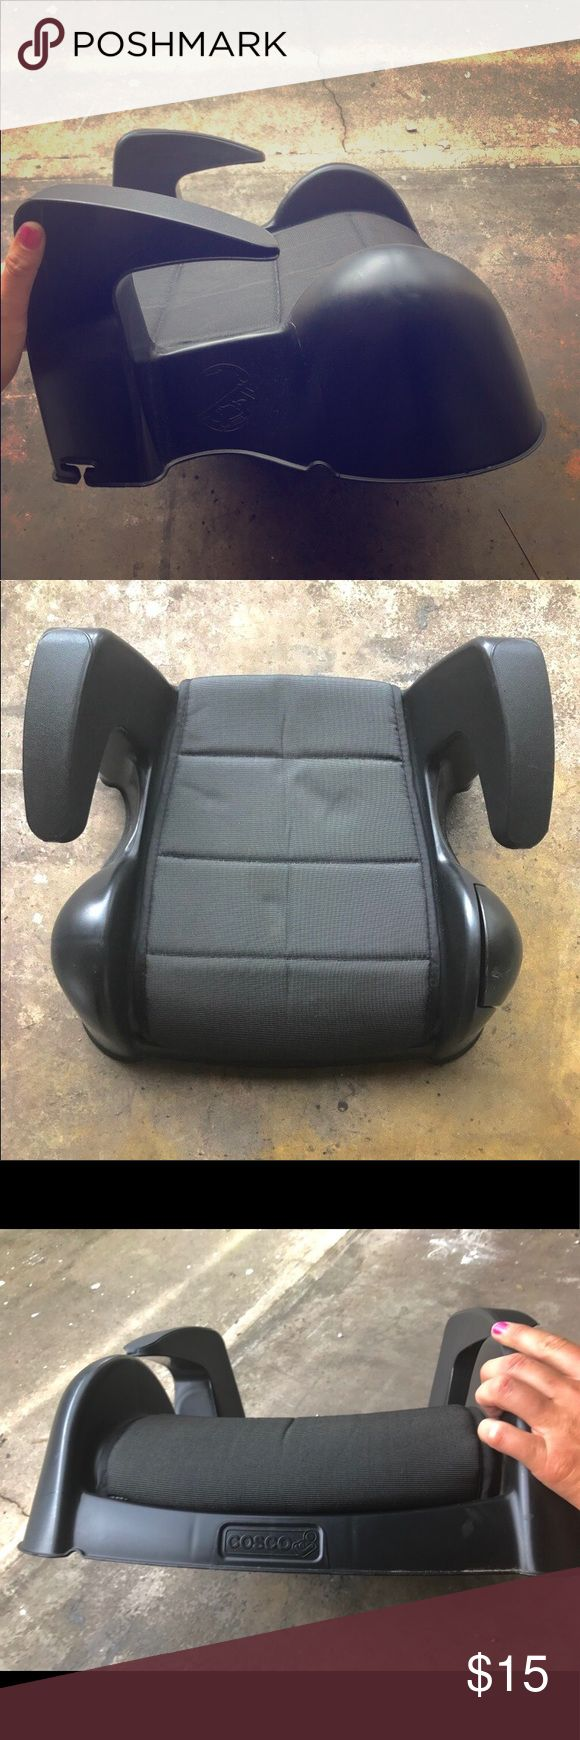 Grey COSCO Child's Booster Seat! 🐝🐢 Grey COSCO Child's Booster Seat! 🐝🐢  Retail: $39.95 used - New you'll pay MUCH more!   🍃EXCELLENT used condition!! 🍃FLAWS- Just a minor scratch or two (nothing noticeable), needs to be whipped down a little from being in storage (which I can do before shipping), & I zoomed in on a picture that shows an indent from something laying on seat. 🐢  💛 Feel free to comment me if you have any questions and hit the OFFER button if you love the item but not…